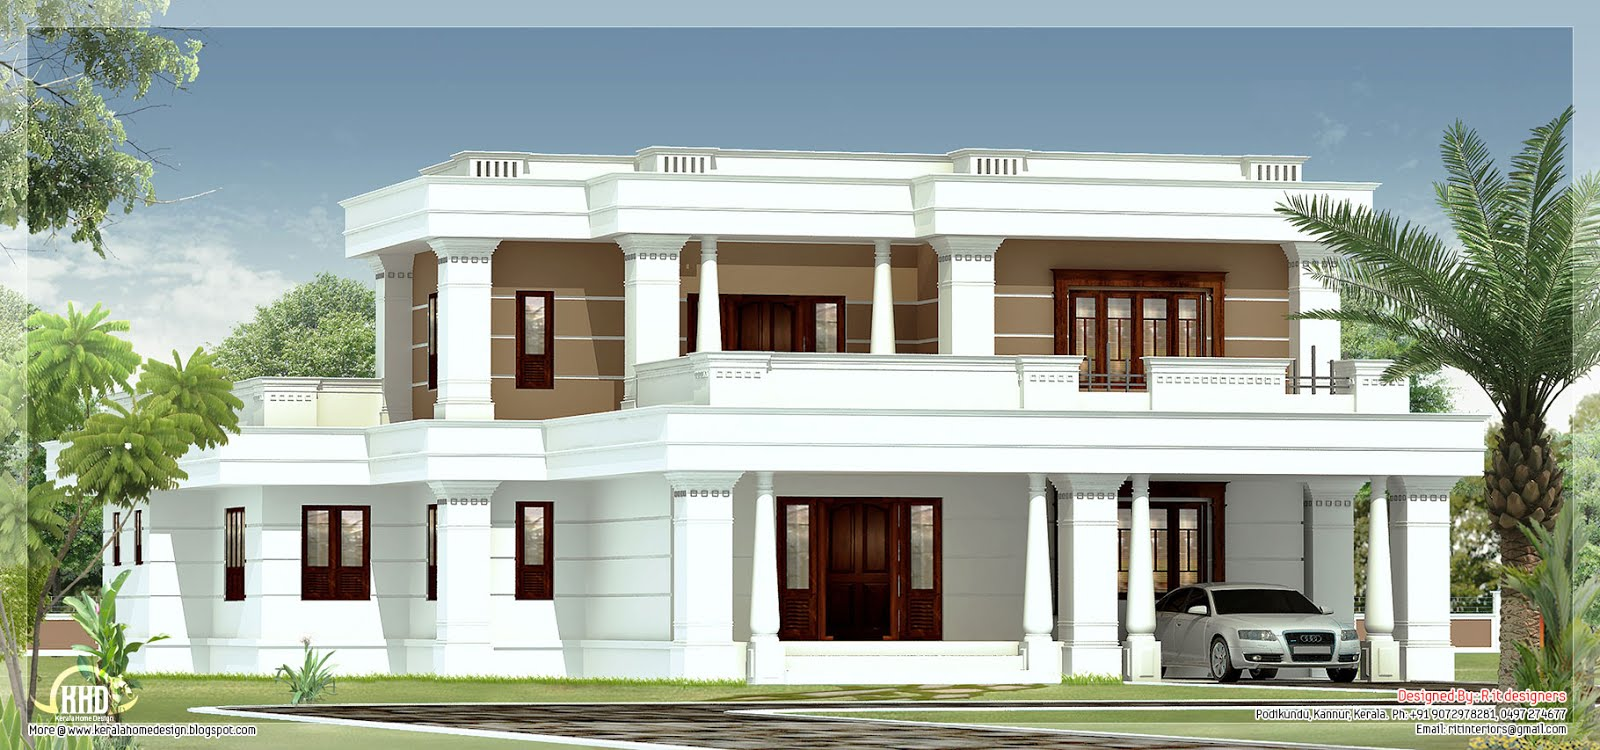 4 bedroom flat roof villa kerala home design and floor plans for Kerala home designs and floor plans